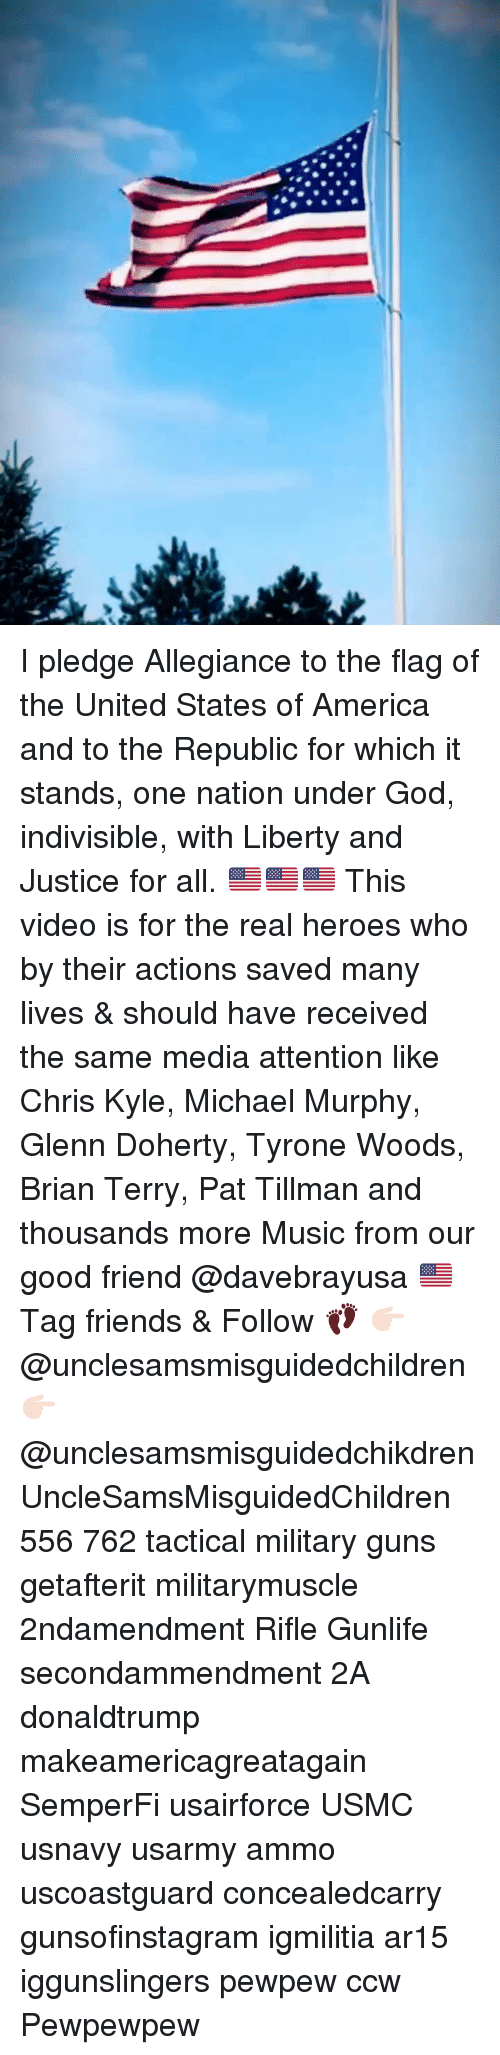 America, Friends, and God: I pledge Allegiance to the flag of the United States of America and to the Republic for which it stands, one nation under God, indivisible, with Liberty and Justice for all. 🇺🇸🇺🇸🇺🇸 This video is for the real heroes who by their actions saved many lives & should have received the same media attention like Chris Kyle, Michael Murphy, Glenn Doherty, Tyrone Woods, Brian Terry, Pat Tillman and thousands more Music from our good friend @davebrayusa 🇺🇸 Tag friends & Follow 👣 👉🏻 @unclesamsmisguidedchildren 👉🏻 @unclesamsmisguidedchikdren UncleSamsMisguidedChildren 556 762 tactical military guns getafterit militarymuscle 2ndamendment Rifle Gunlife secondammendment 2A donaldtrump makeamericagreatagain SemperFi usairforce USMC usnavy usarmy ammo uscoastguard concealedcarry gunsofinstagram igmilitia ar15 iggunslingers pewpew ccw Pewpewpew